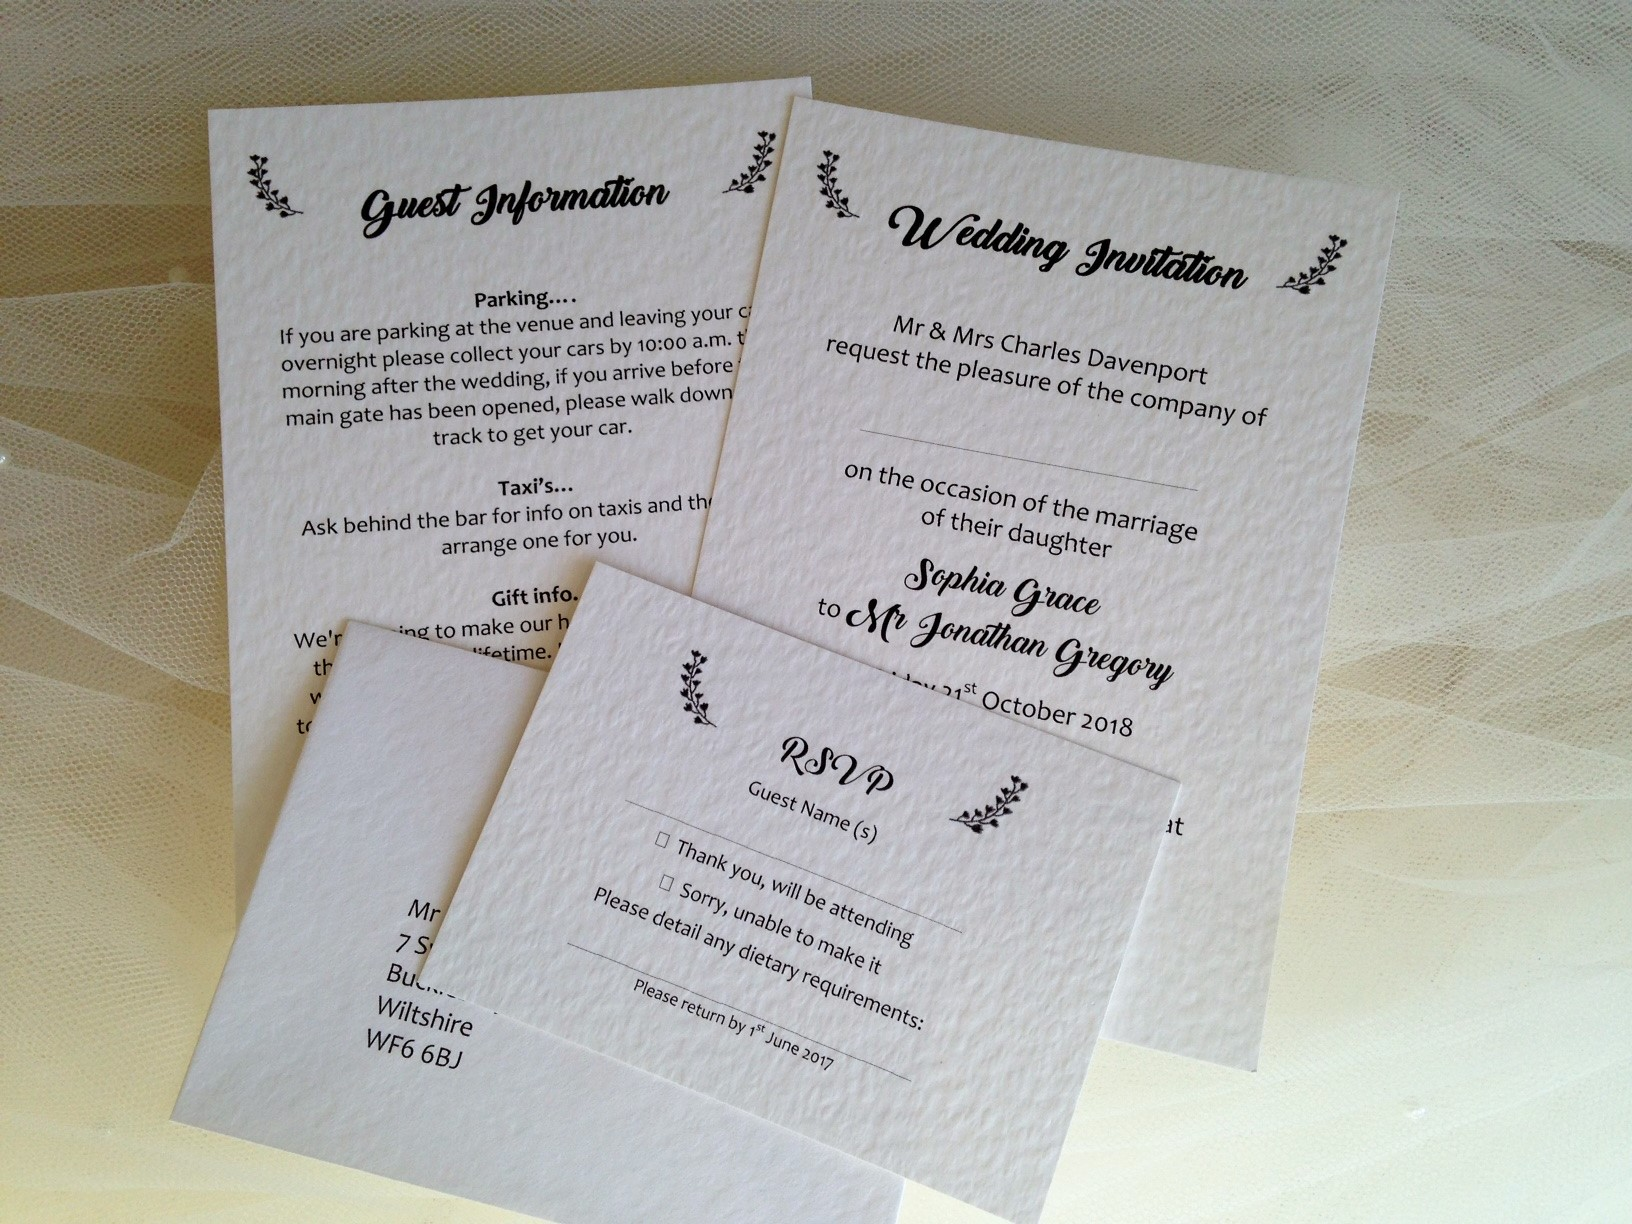 Wedding invitations 60p wedding stationery affordable wedding rsvp cards and guest information cards stopboris Image collections